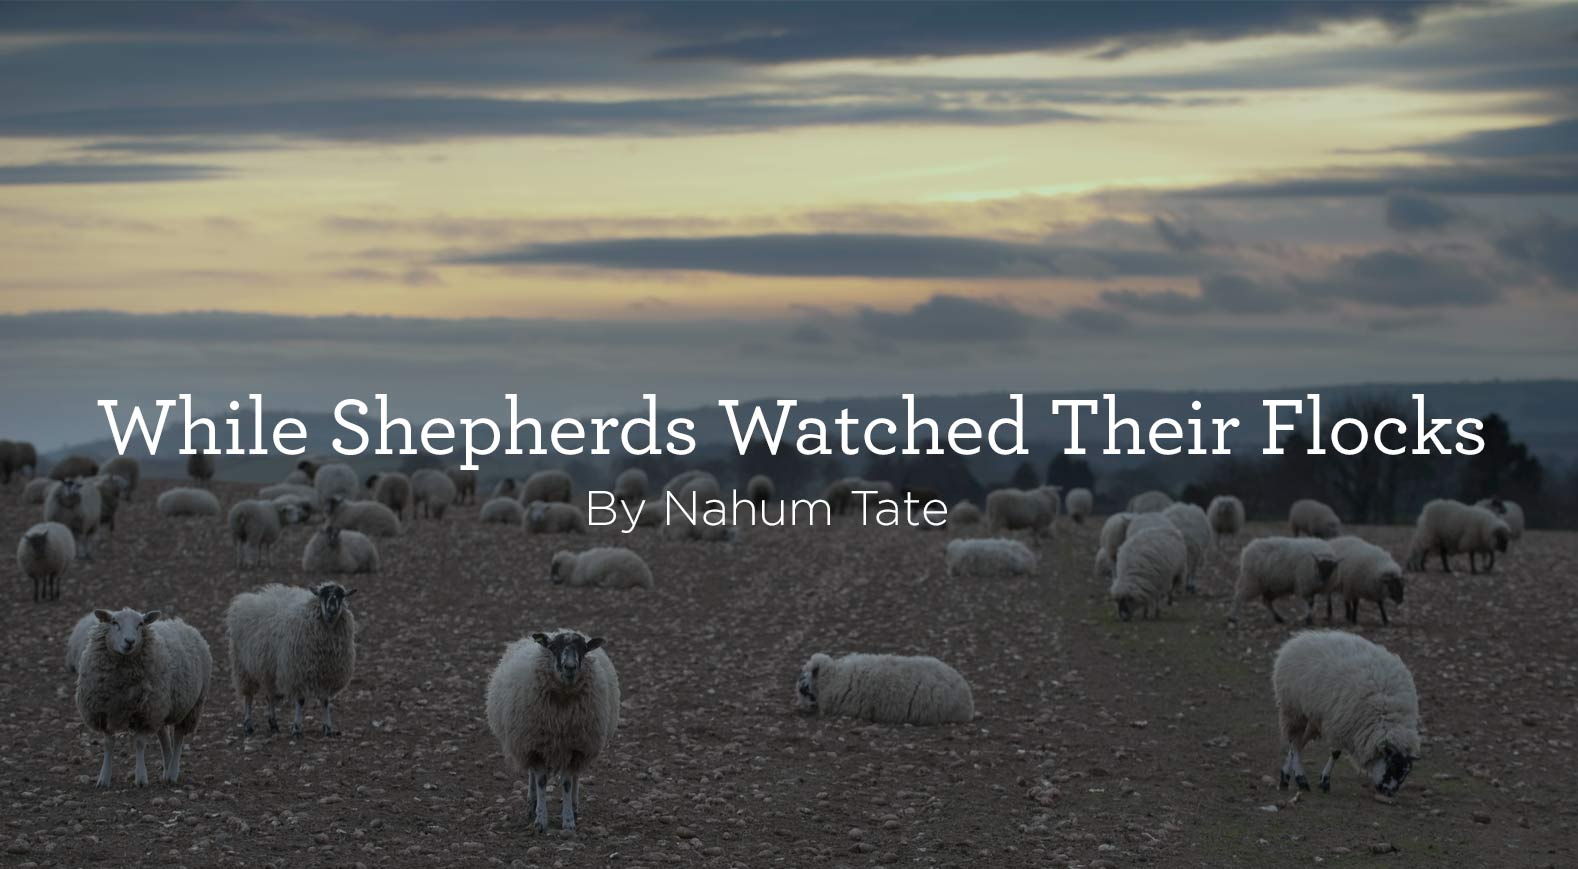 While Shepherds Watch Their Flocks